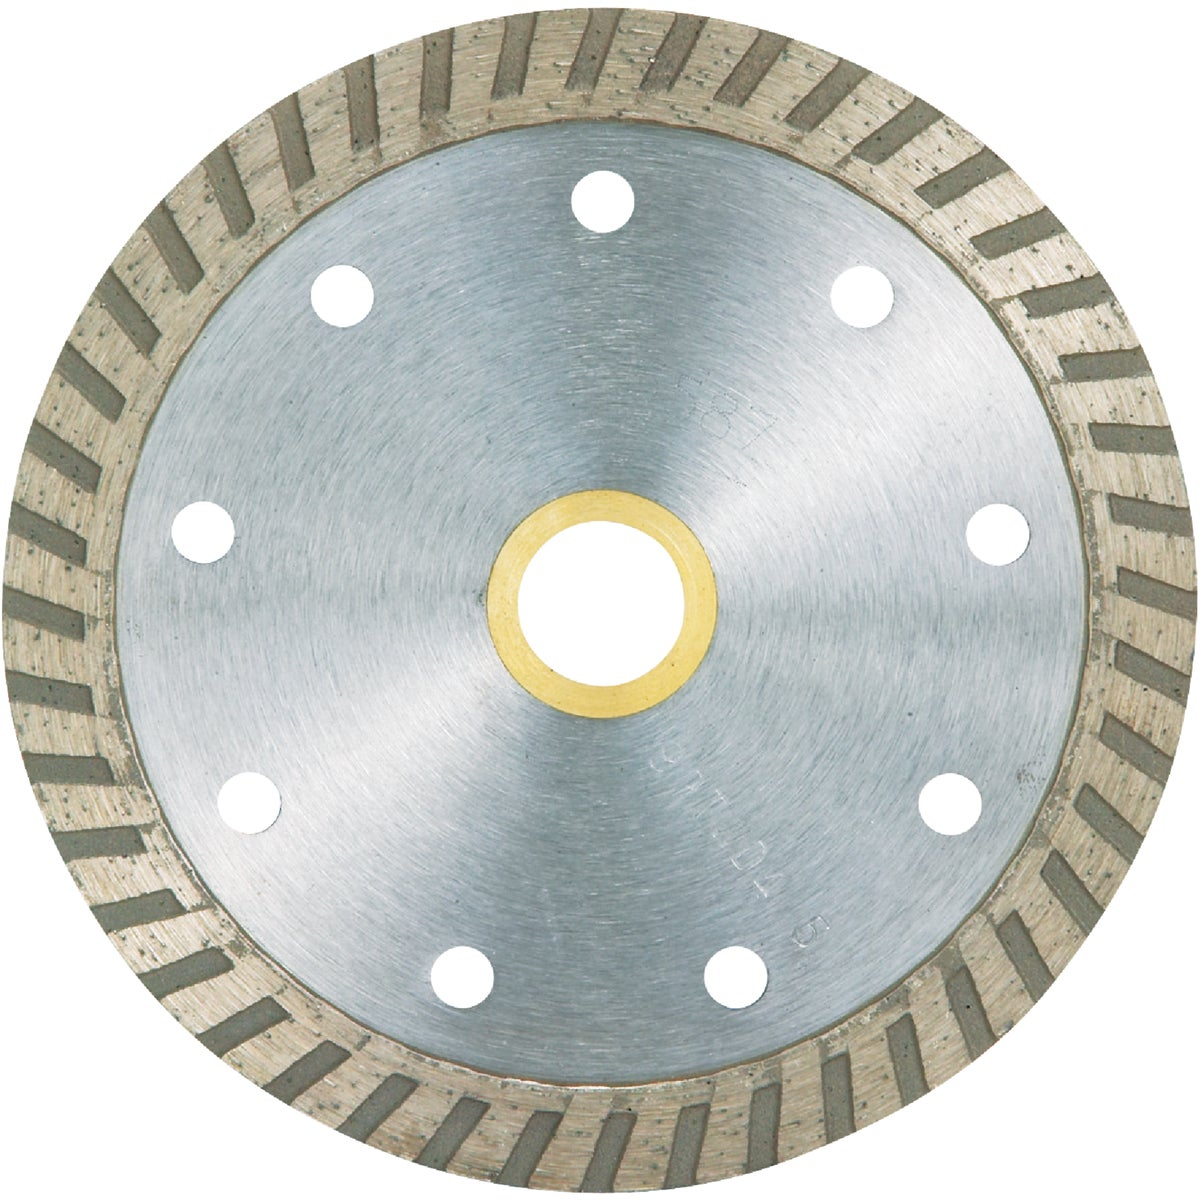 "4-1/2"" DIAMOND BLADE - 167021 by M K Diamond Products"